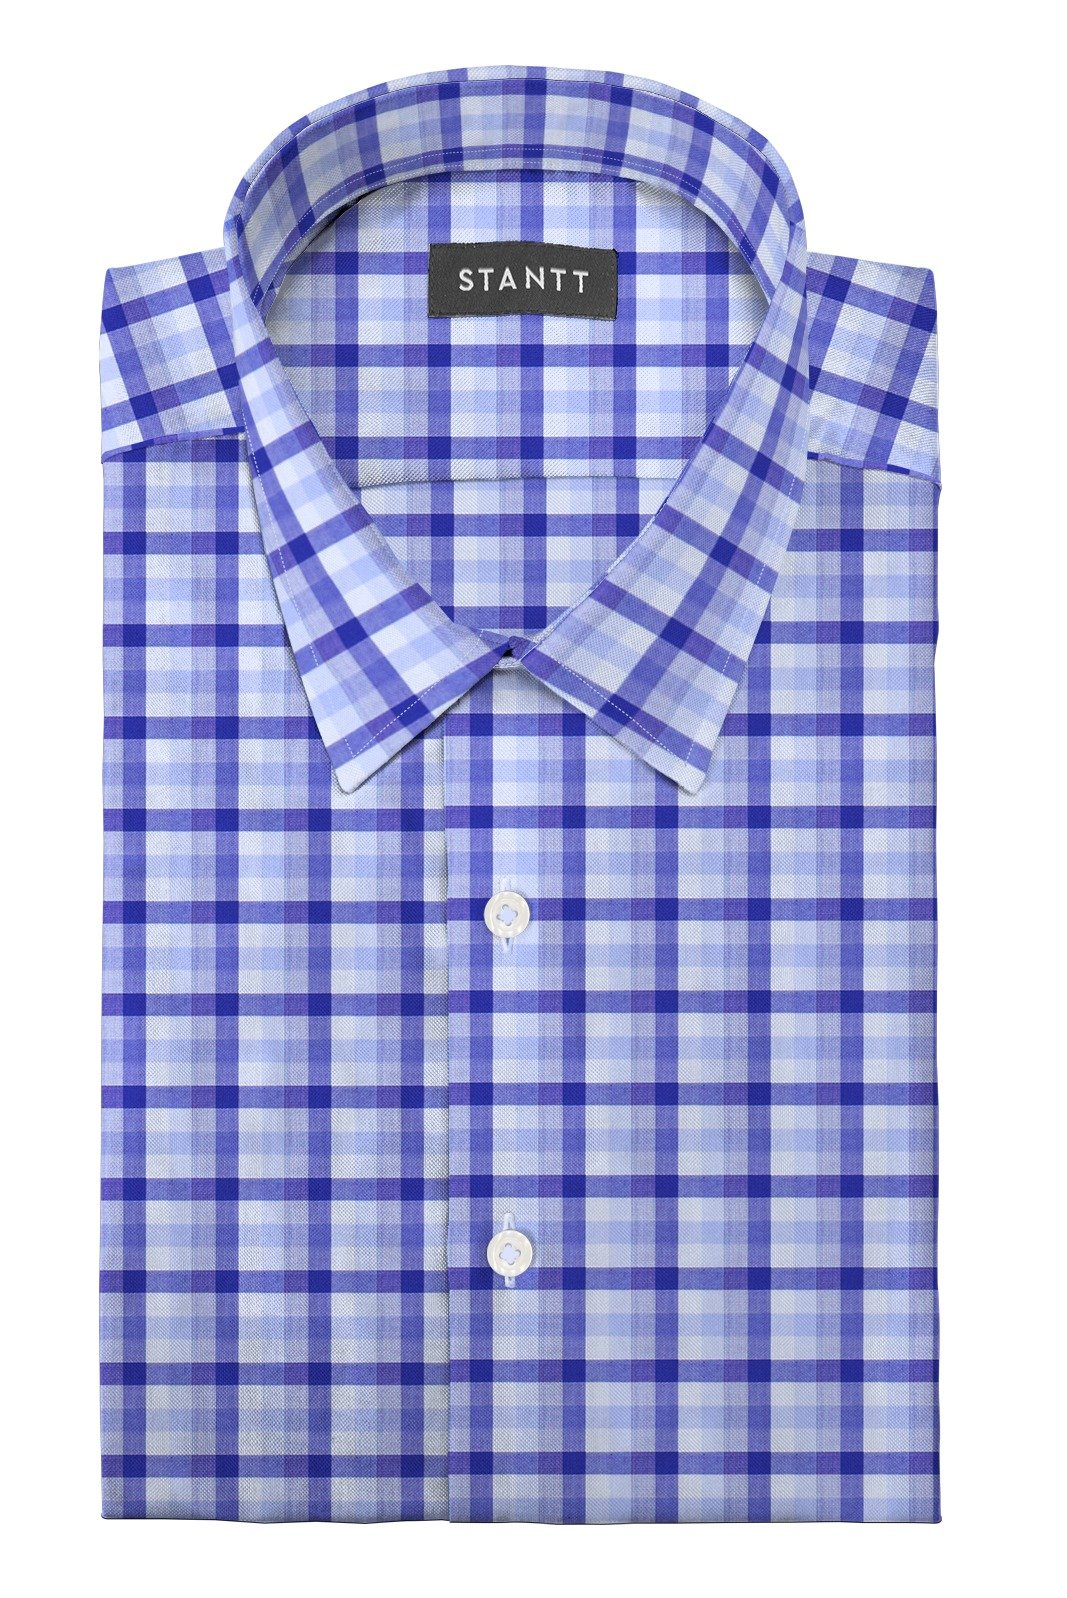 Blue Multi Check: Semi-Spread Collar, Barrel Cuff